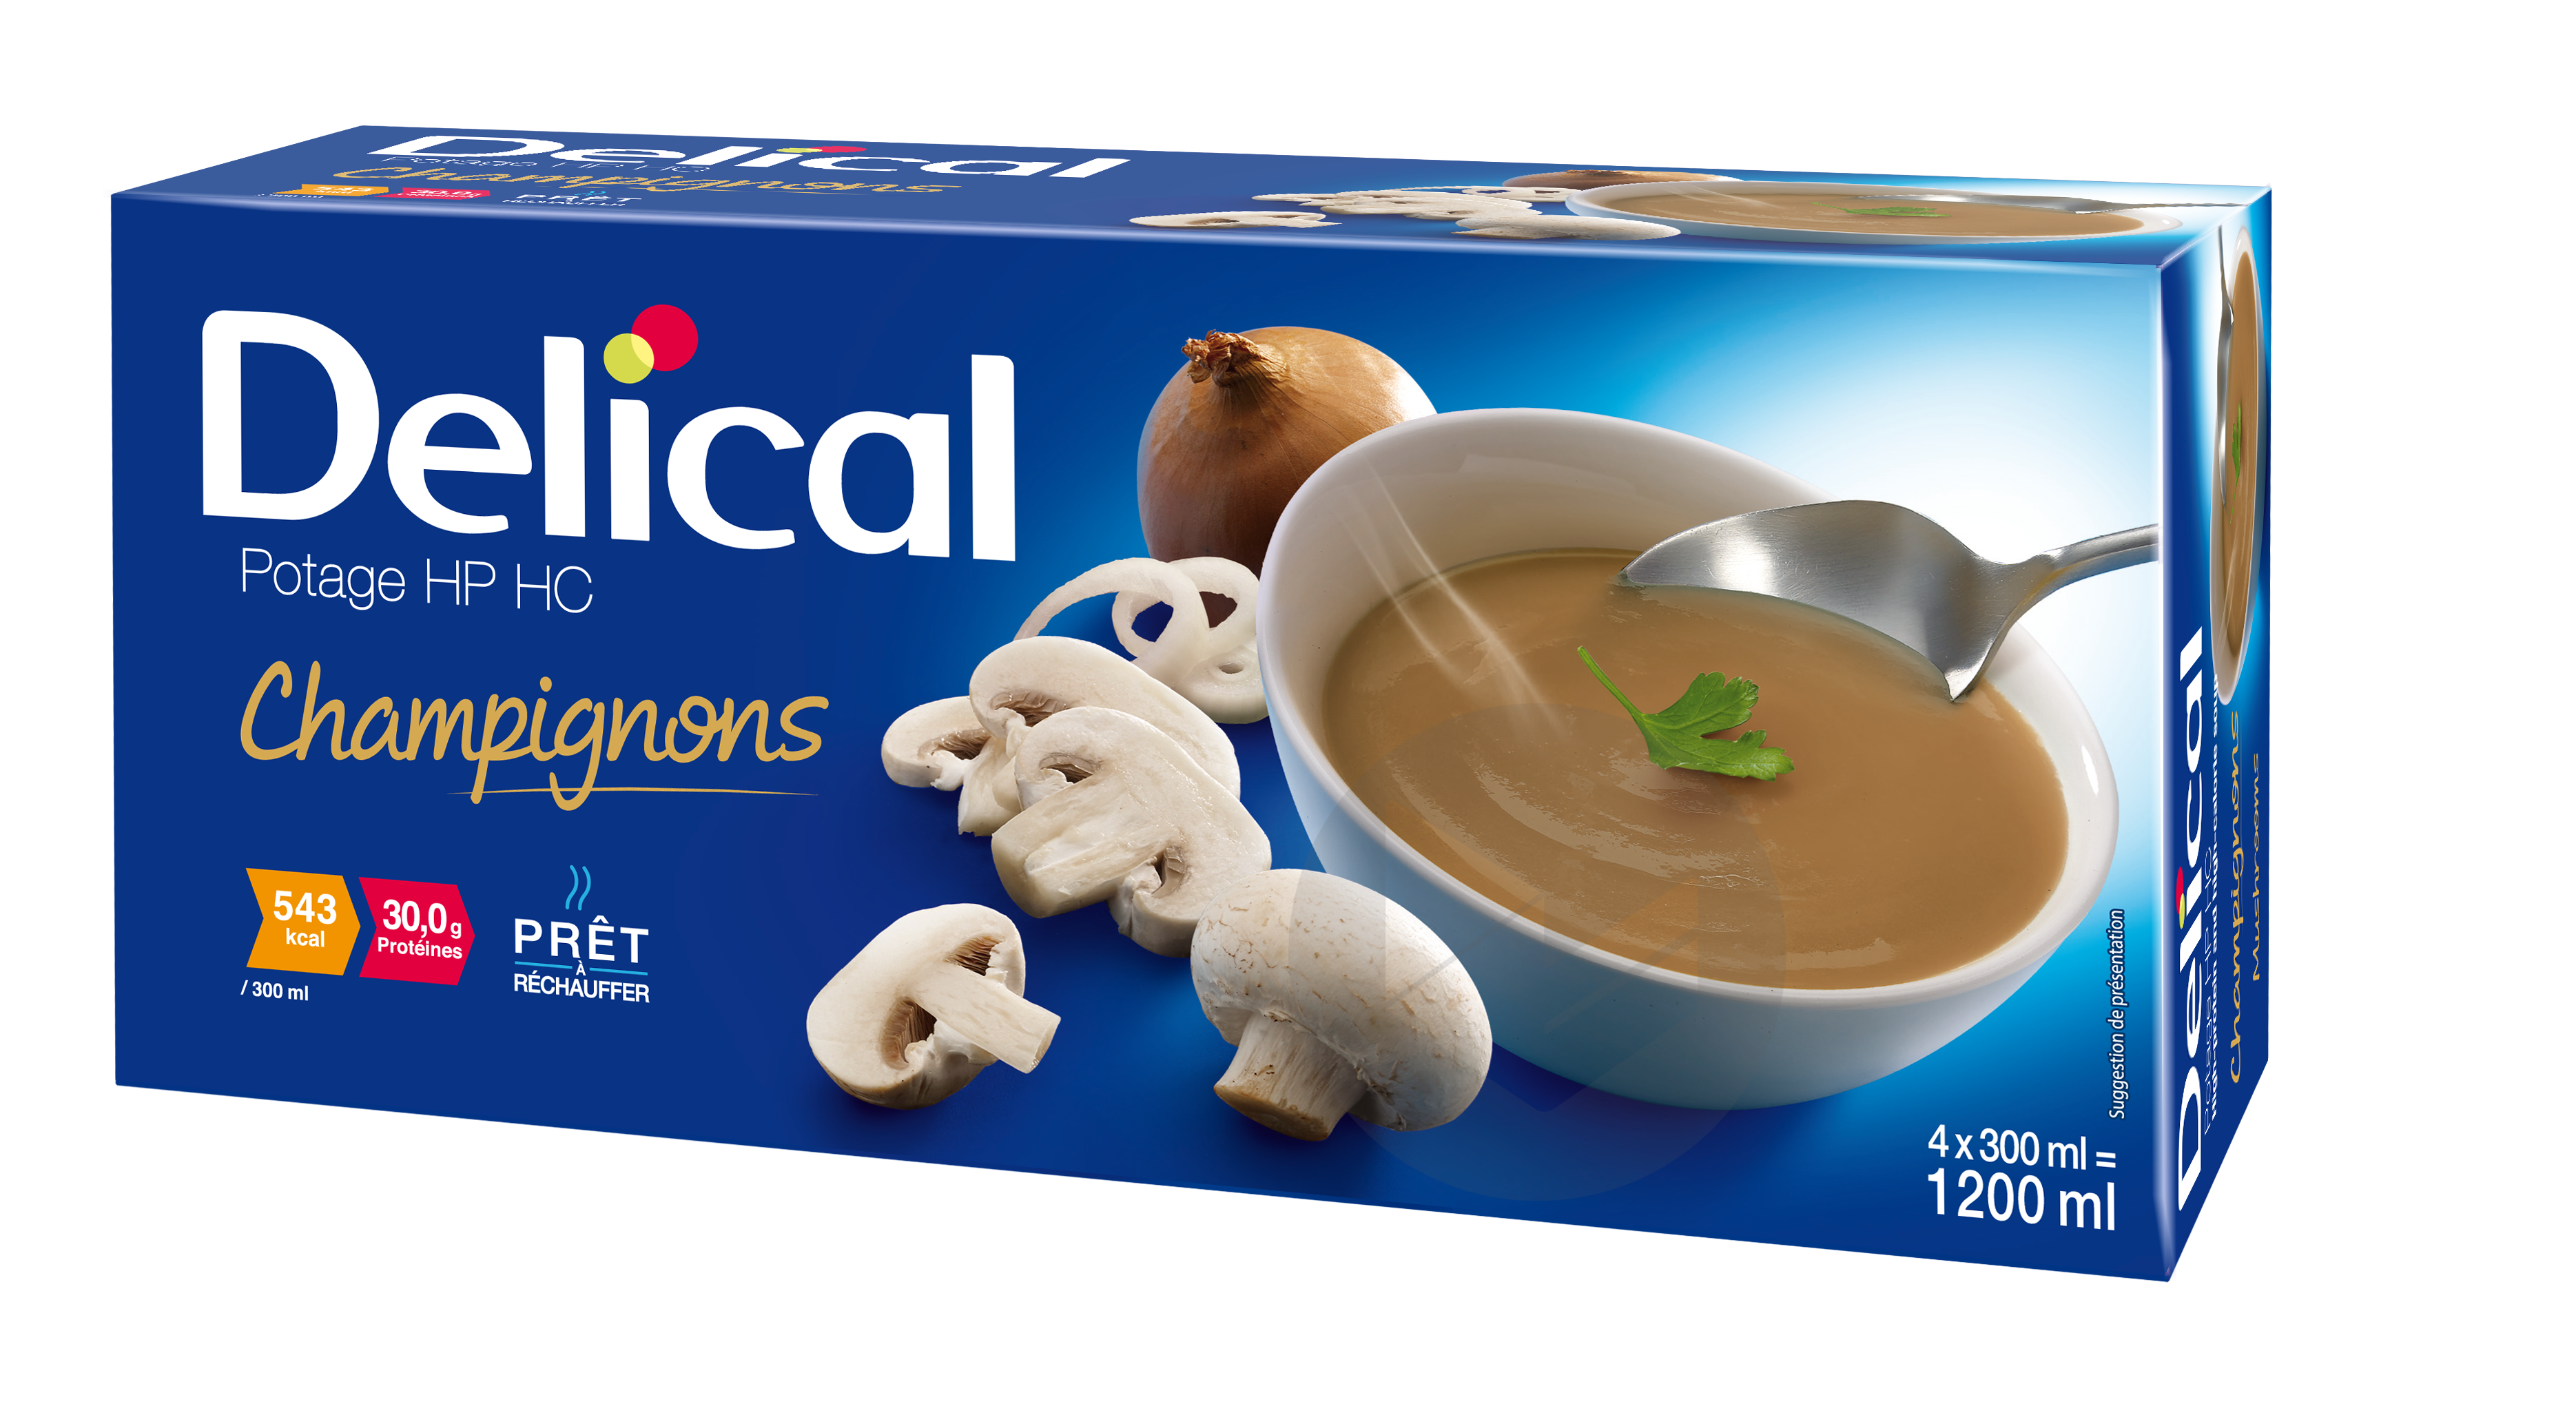 Delical Potage Hp Hc Champignons